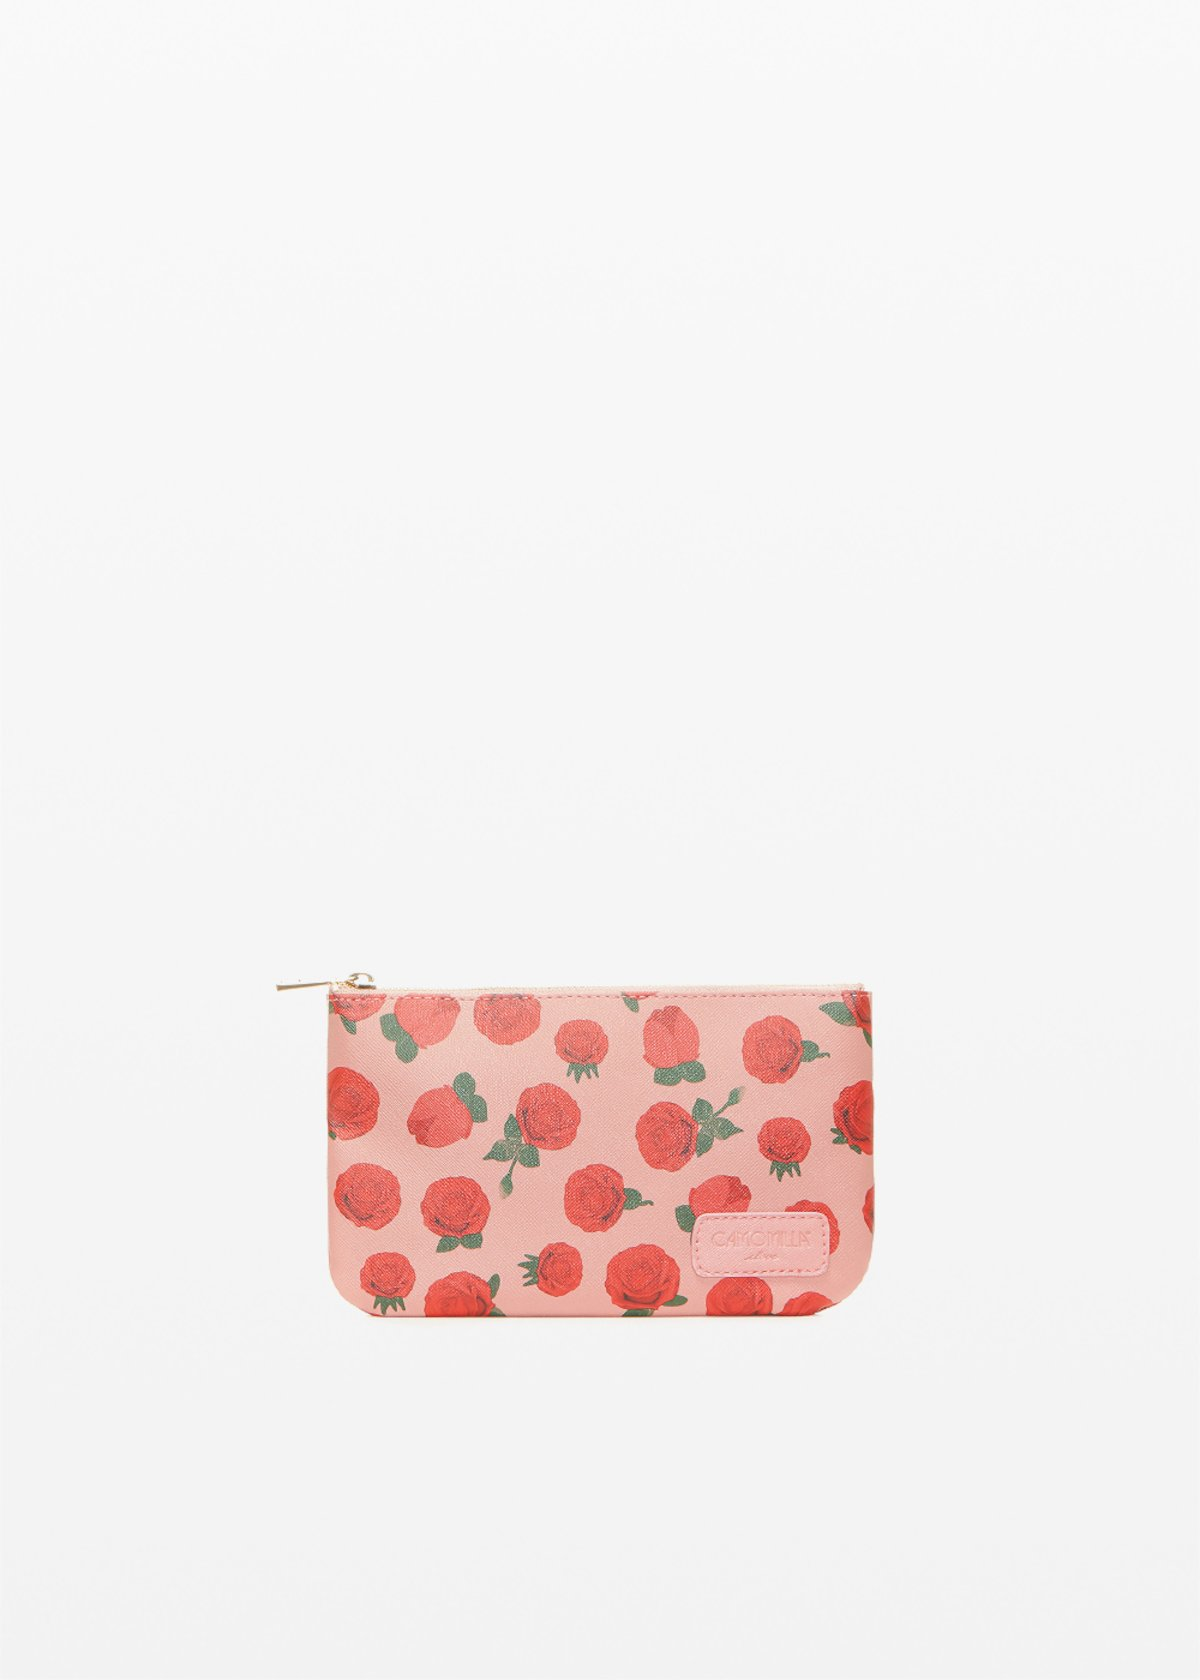 Faux leather Tonga Ros6 clutch with roses print - Calcite Fantasia - Woman - Category image